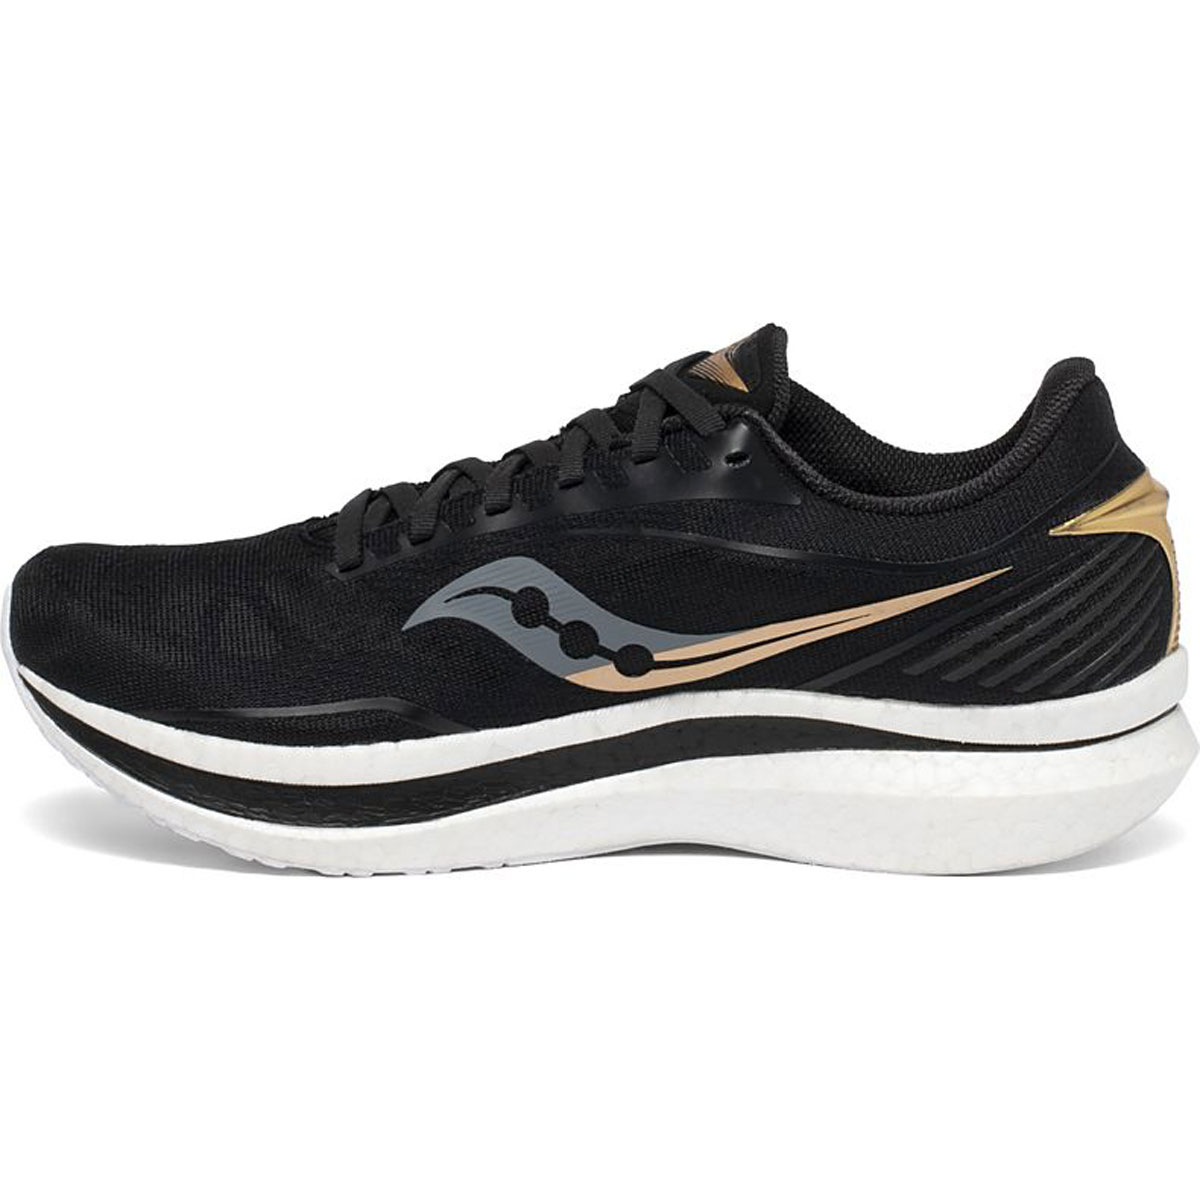 Men's Saucony Endorphin Speed Running Shoe - Color: Black/Gold - Size: 7 - Width: Regular, Black/Gold, large, image 2